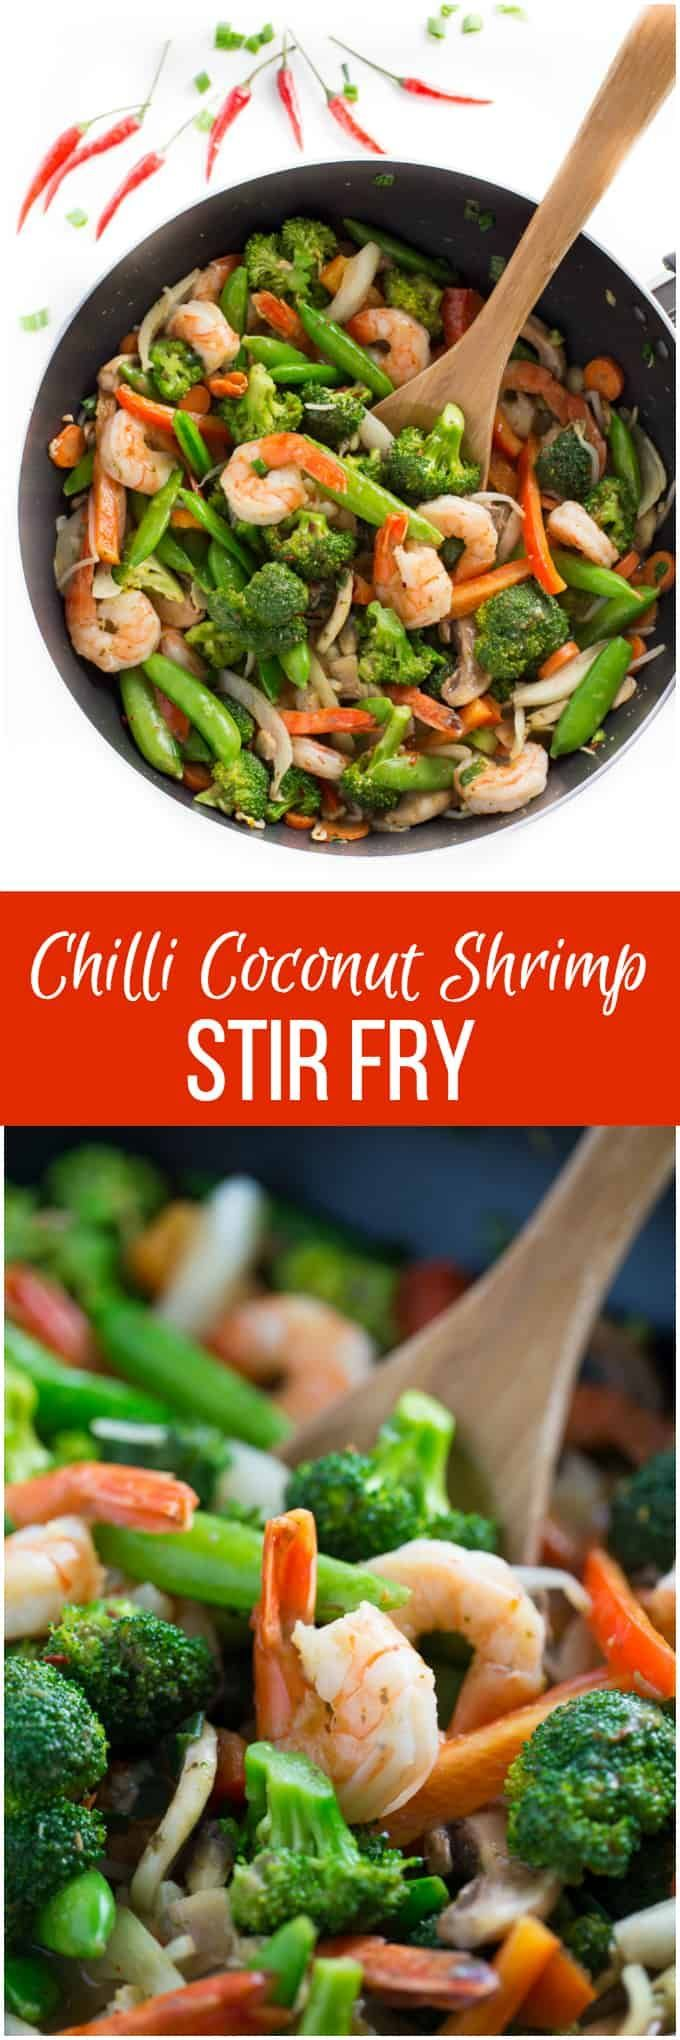 Chilli Coconut Shrimp Stir Fry #stirfryshrimp Chilli Coconut Shrimp Stir Fry - This stir fry recipe makes it easy to eat your veggies! Packed with shrimp, fresh veggies and a creamy, spicy Chilli Coconut sauce, each bite delights your taste buds and satisfies your hunger. #stirfryshrimp